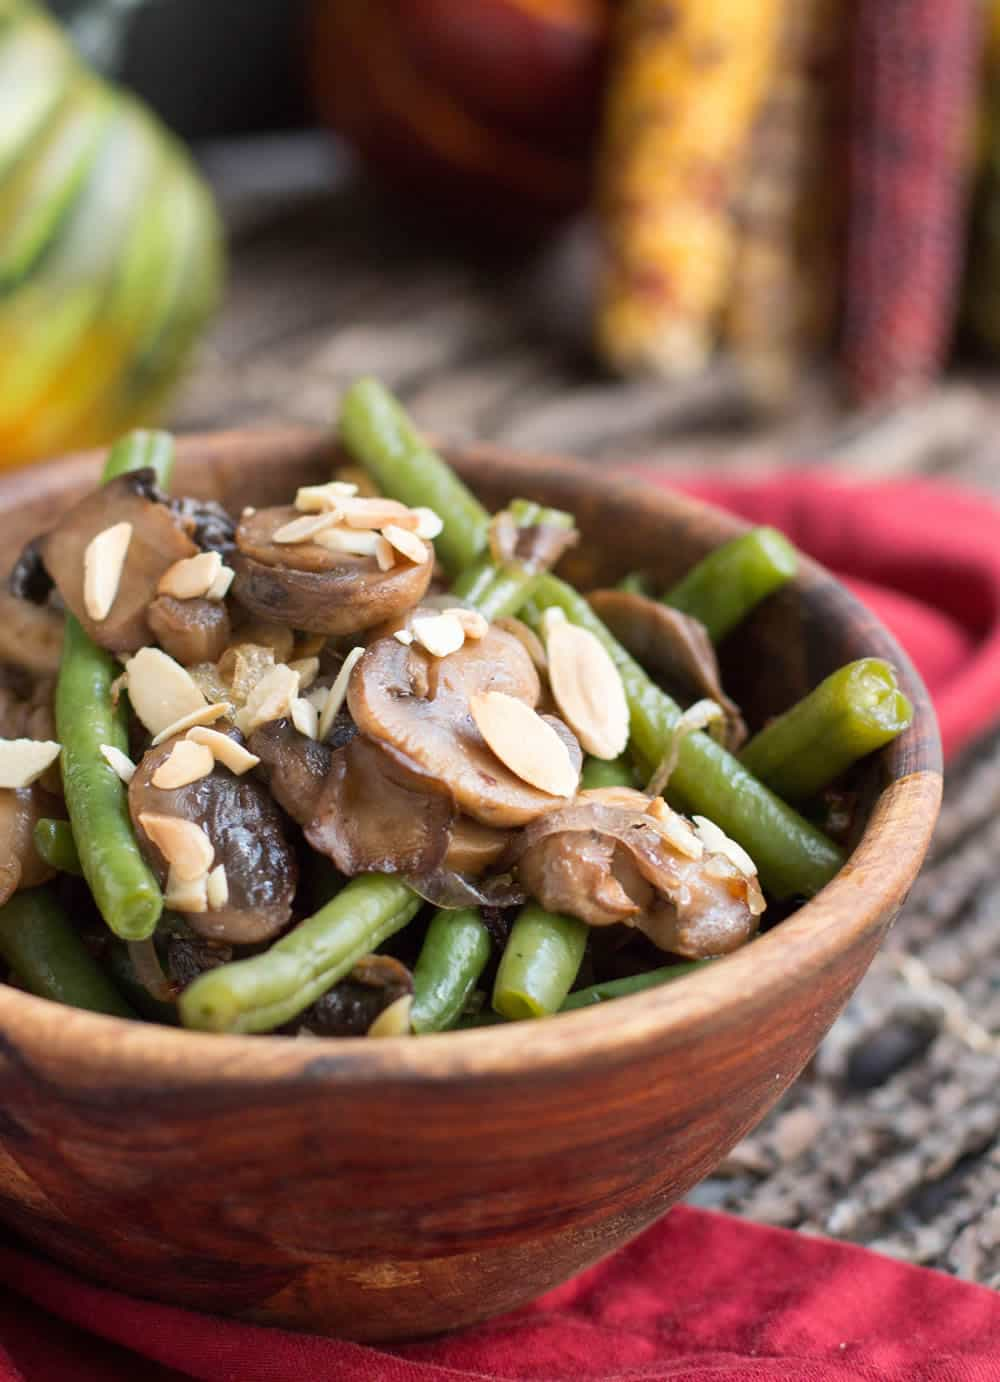 One Pan Green Beans, Mushrooms and Shallots. The flavors of traditional green bean casserole in a lighter, fresher tasting side dish. One pan easy!